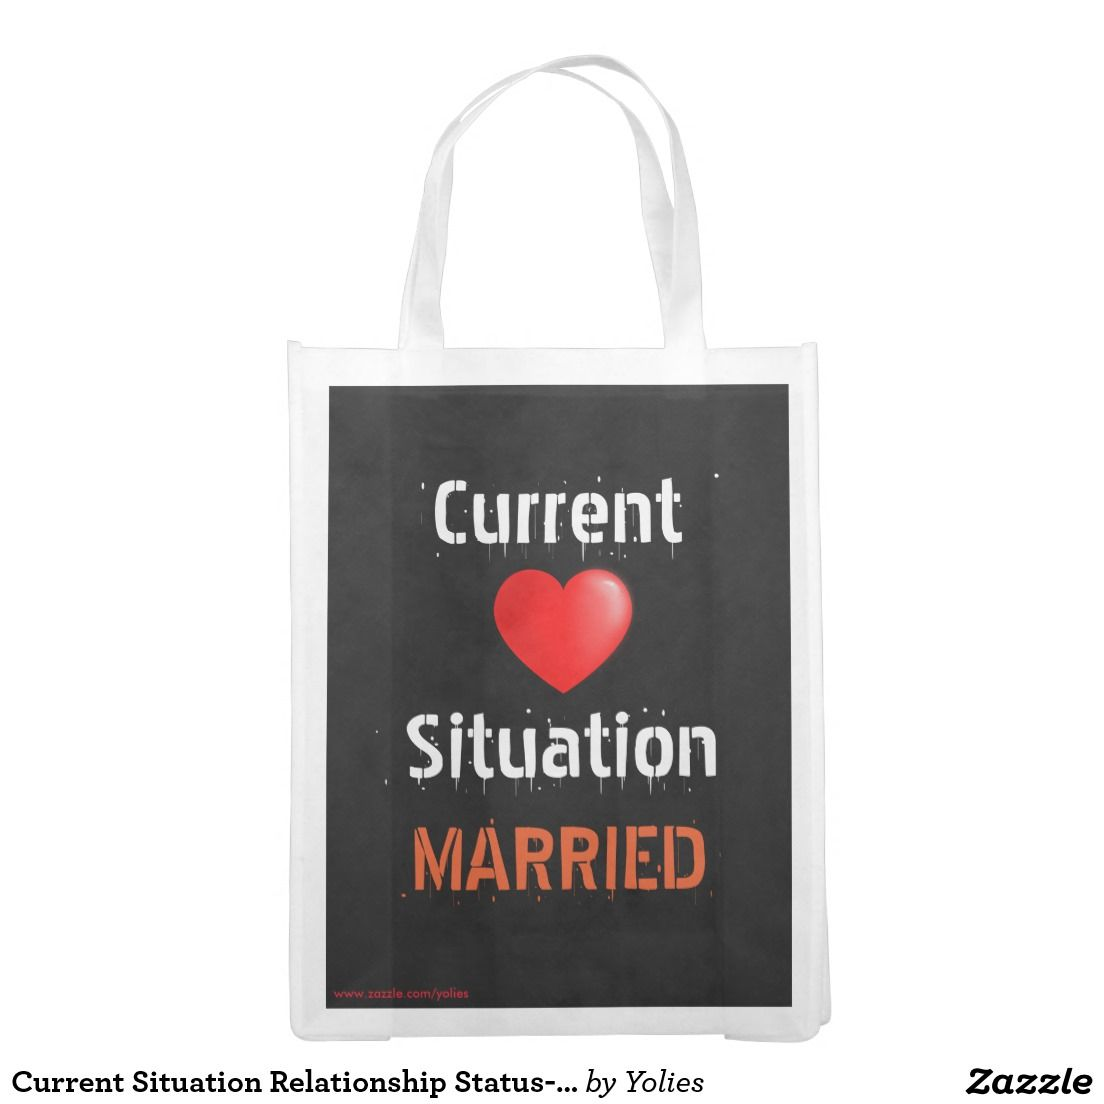 Current Situation Relationship Status-MARRIED Market Totes